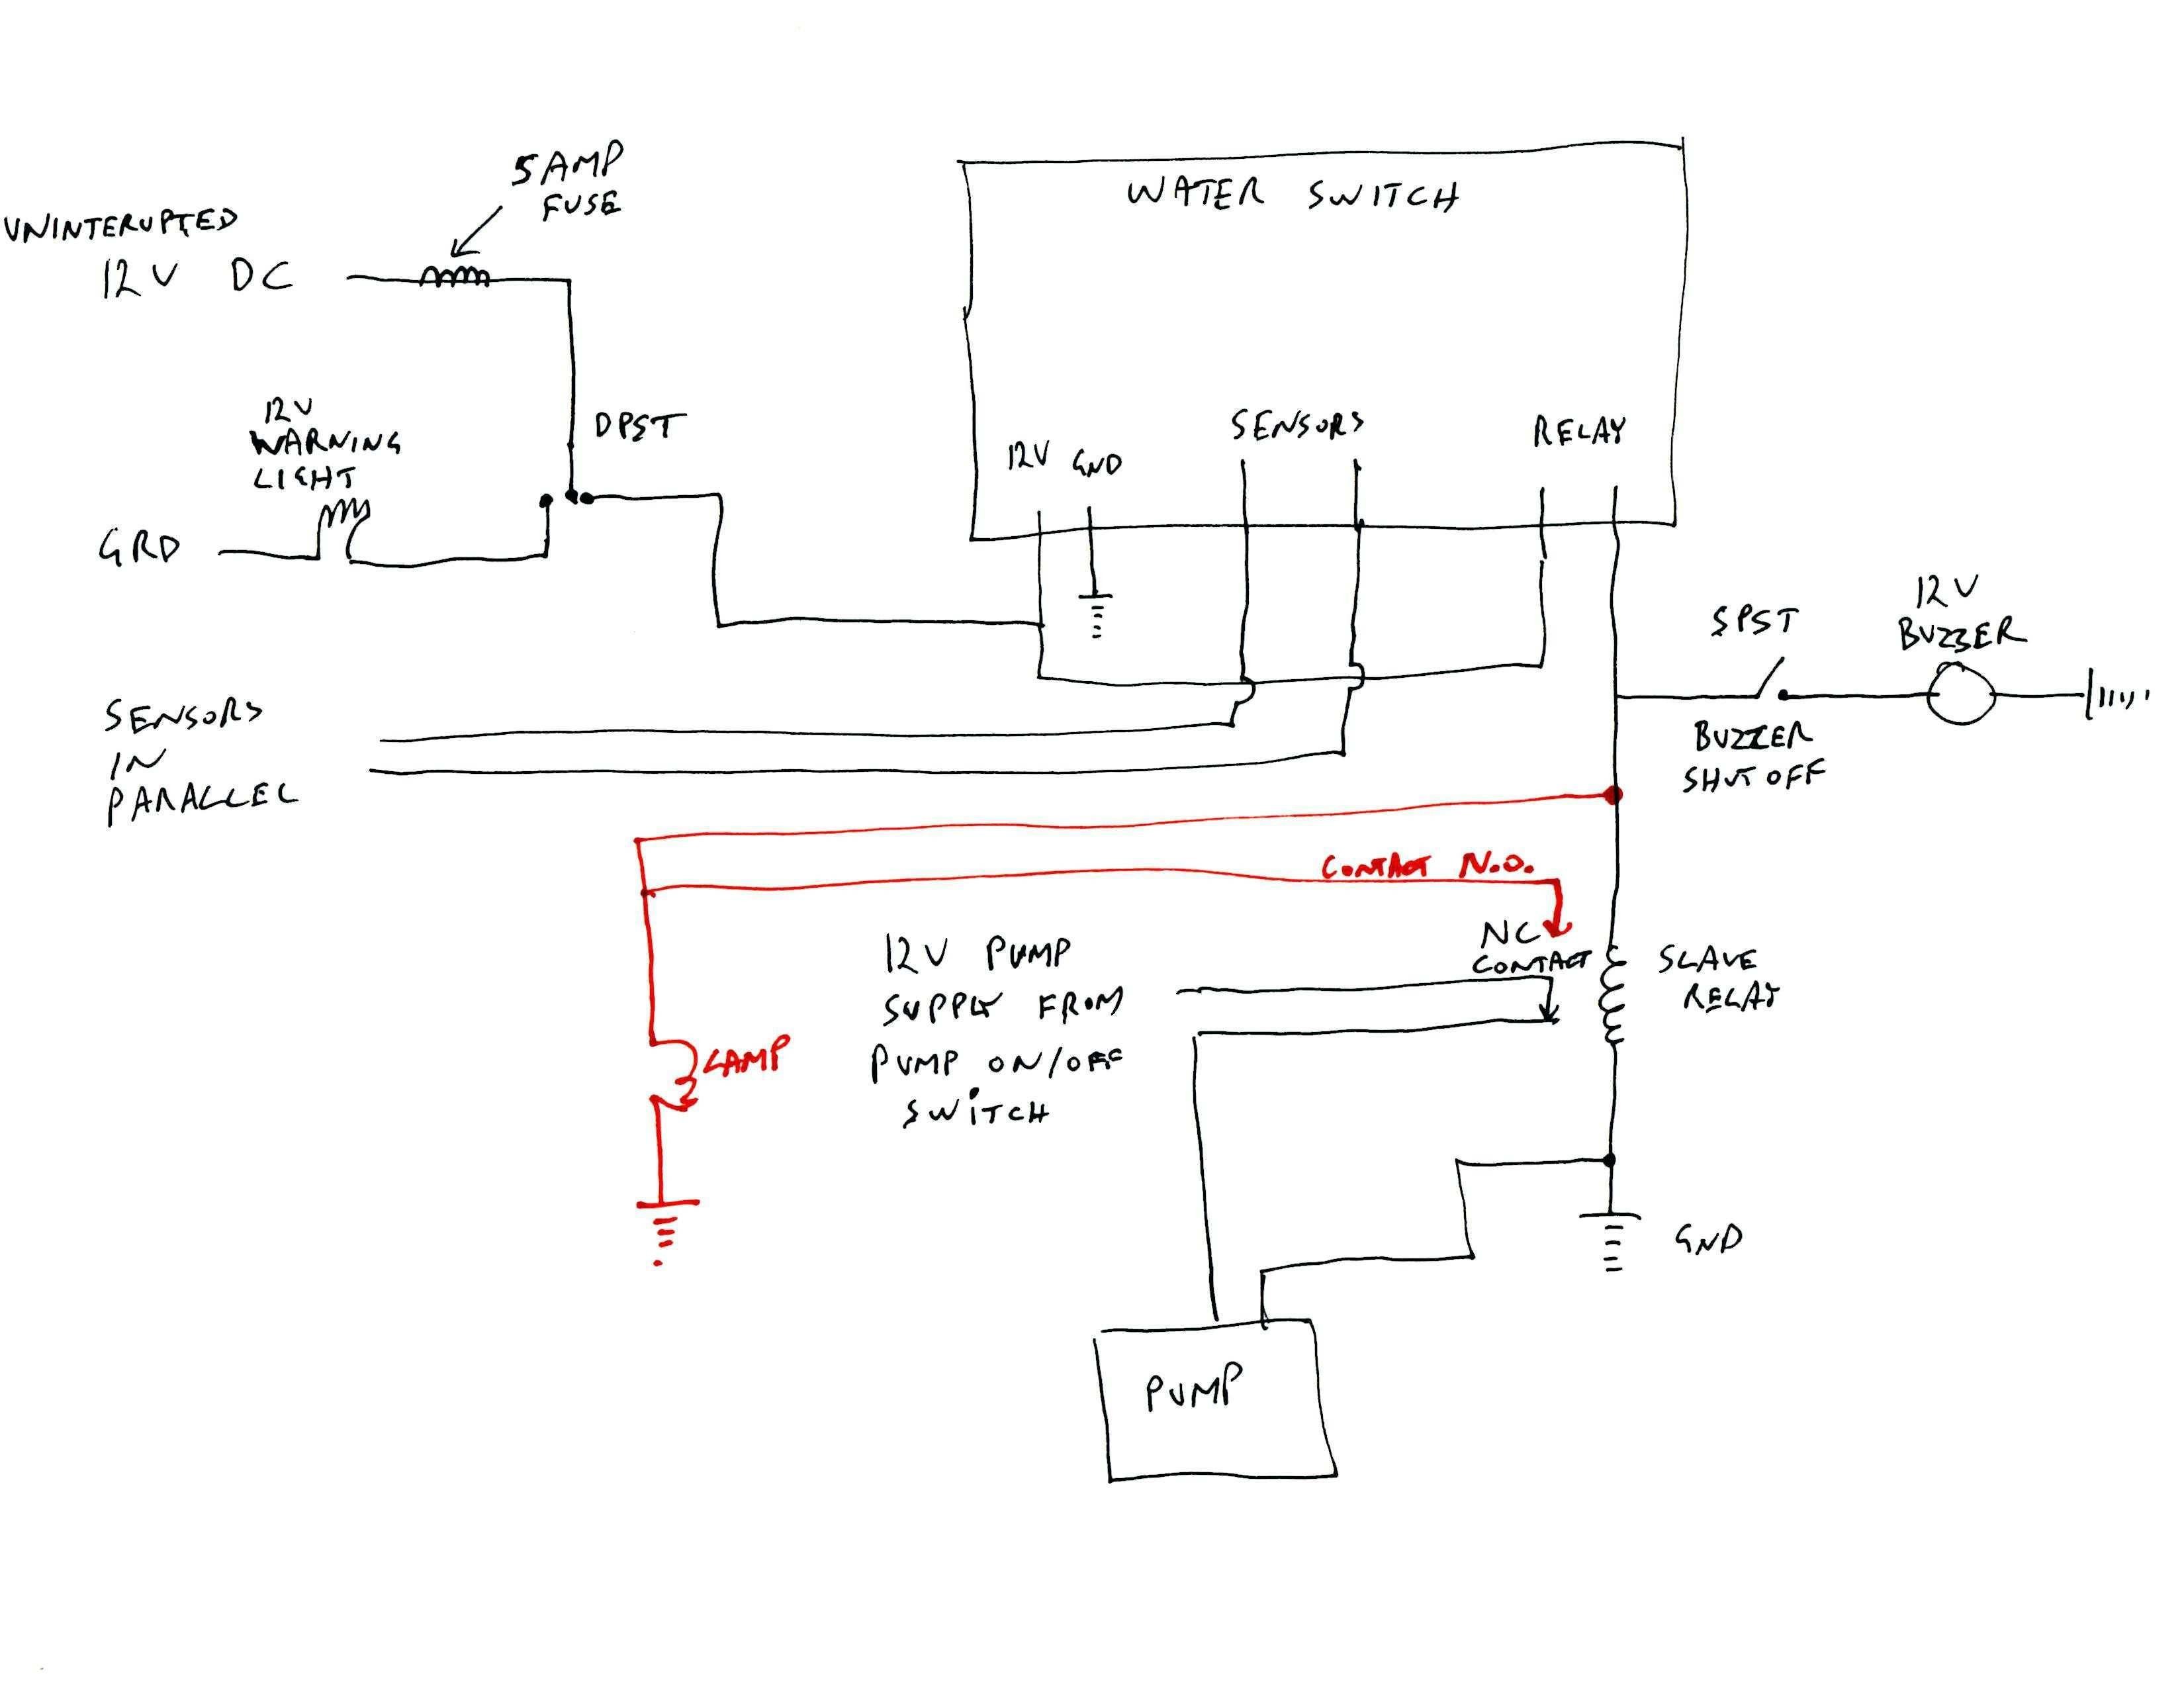 Forest River Travel Trailer Wiring Diagram from static-cdn.imageservice.cloud